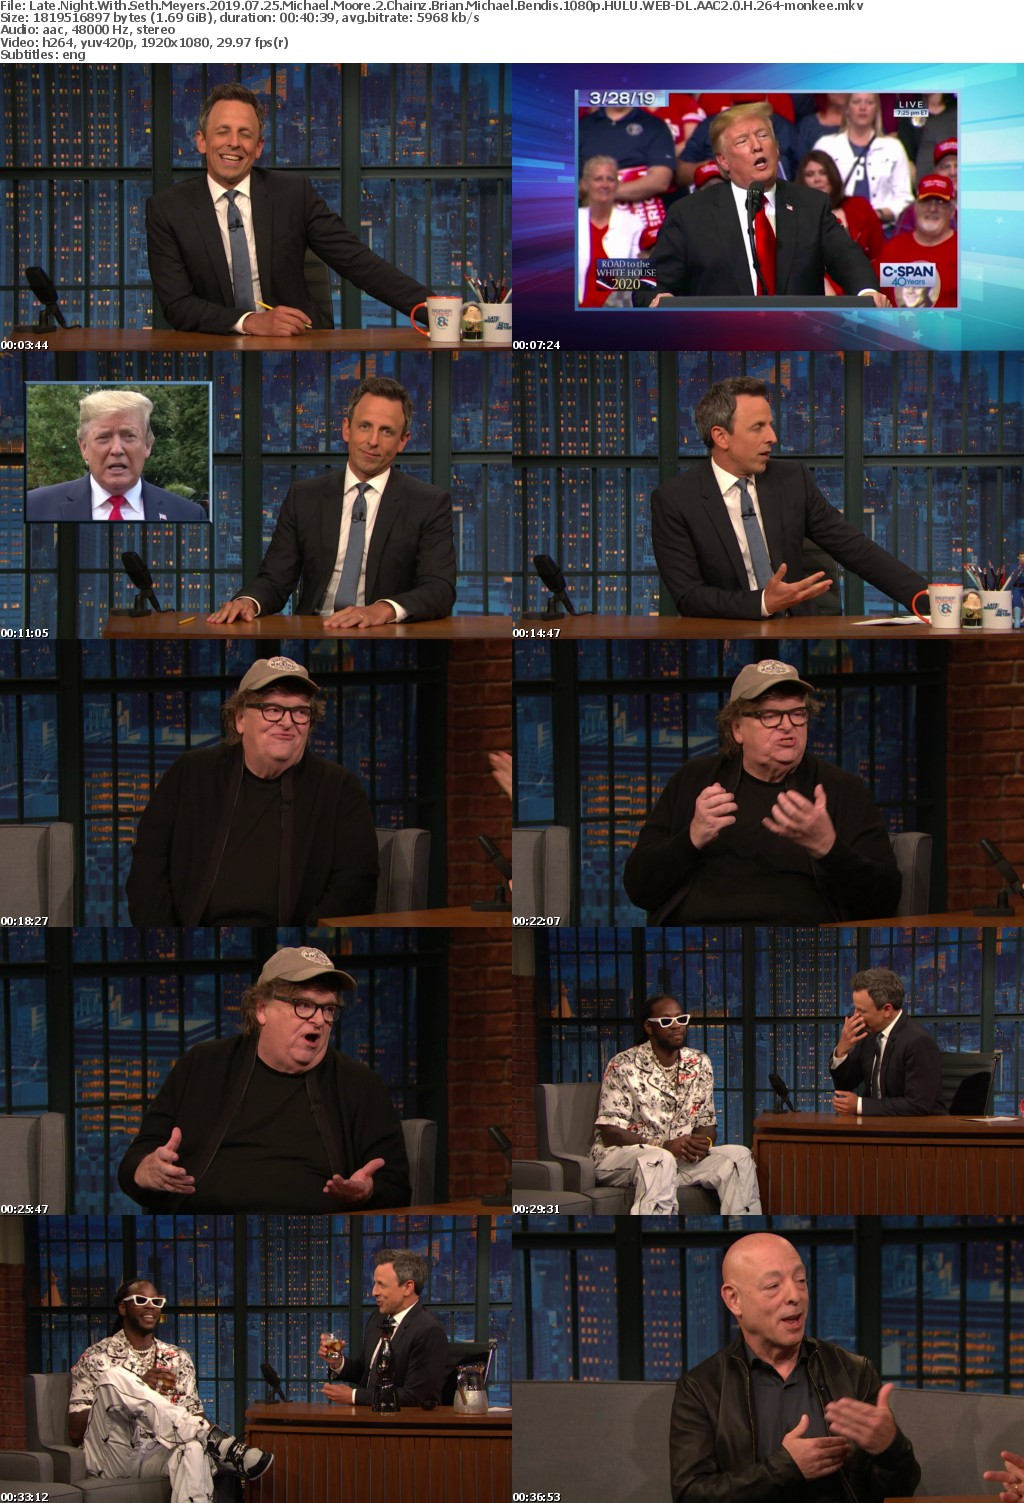 Late Night With Seth Meyers 2019 07 25 Michael Moore 2 Chainz Brian Michael Bendis 1080p HULU WEB-DL AAC2 0 H 264-monkee